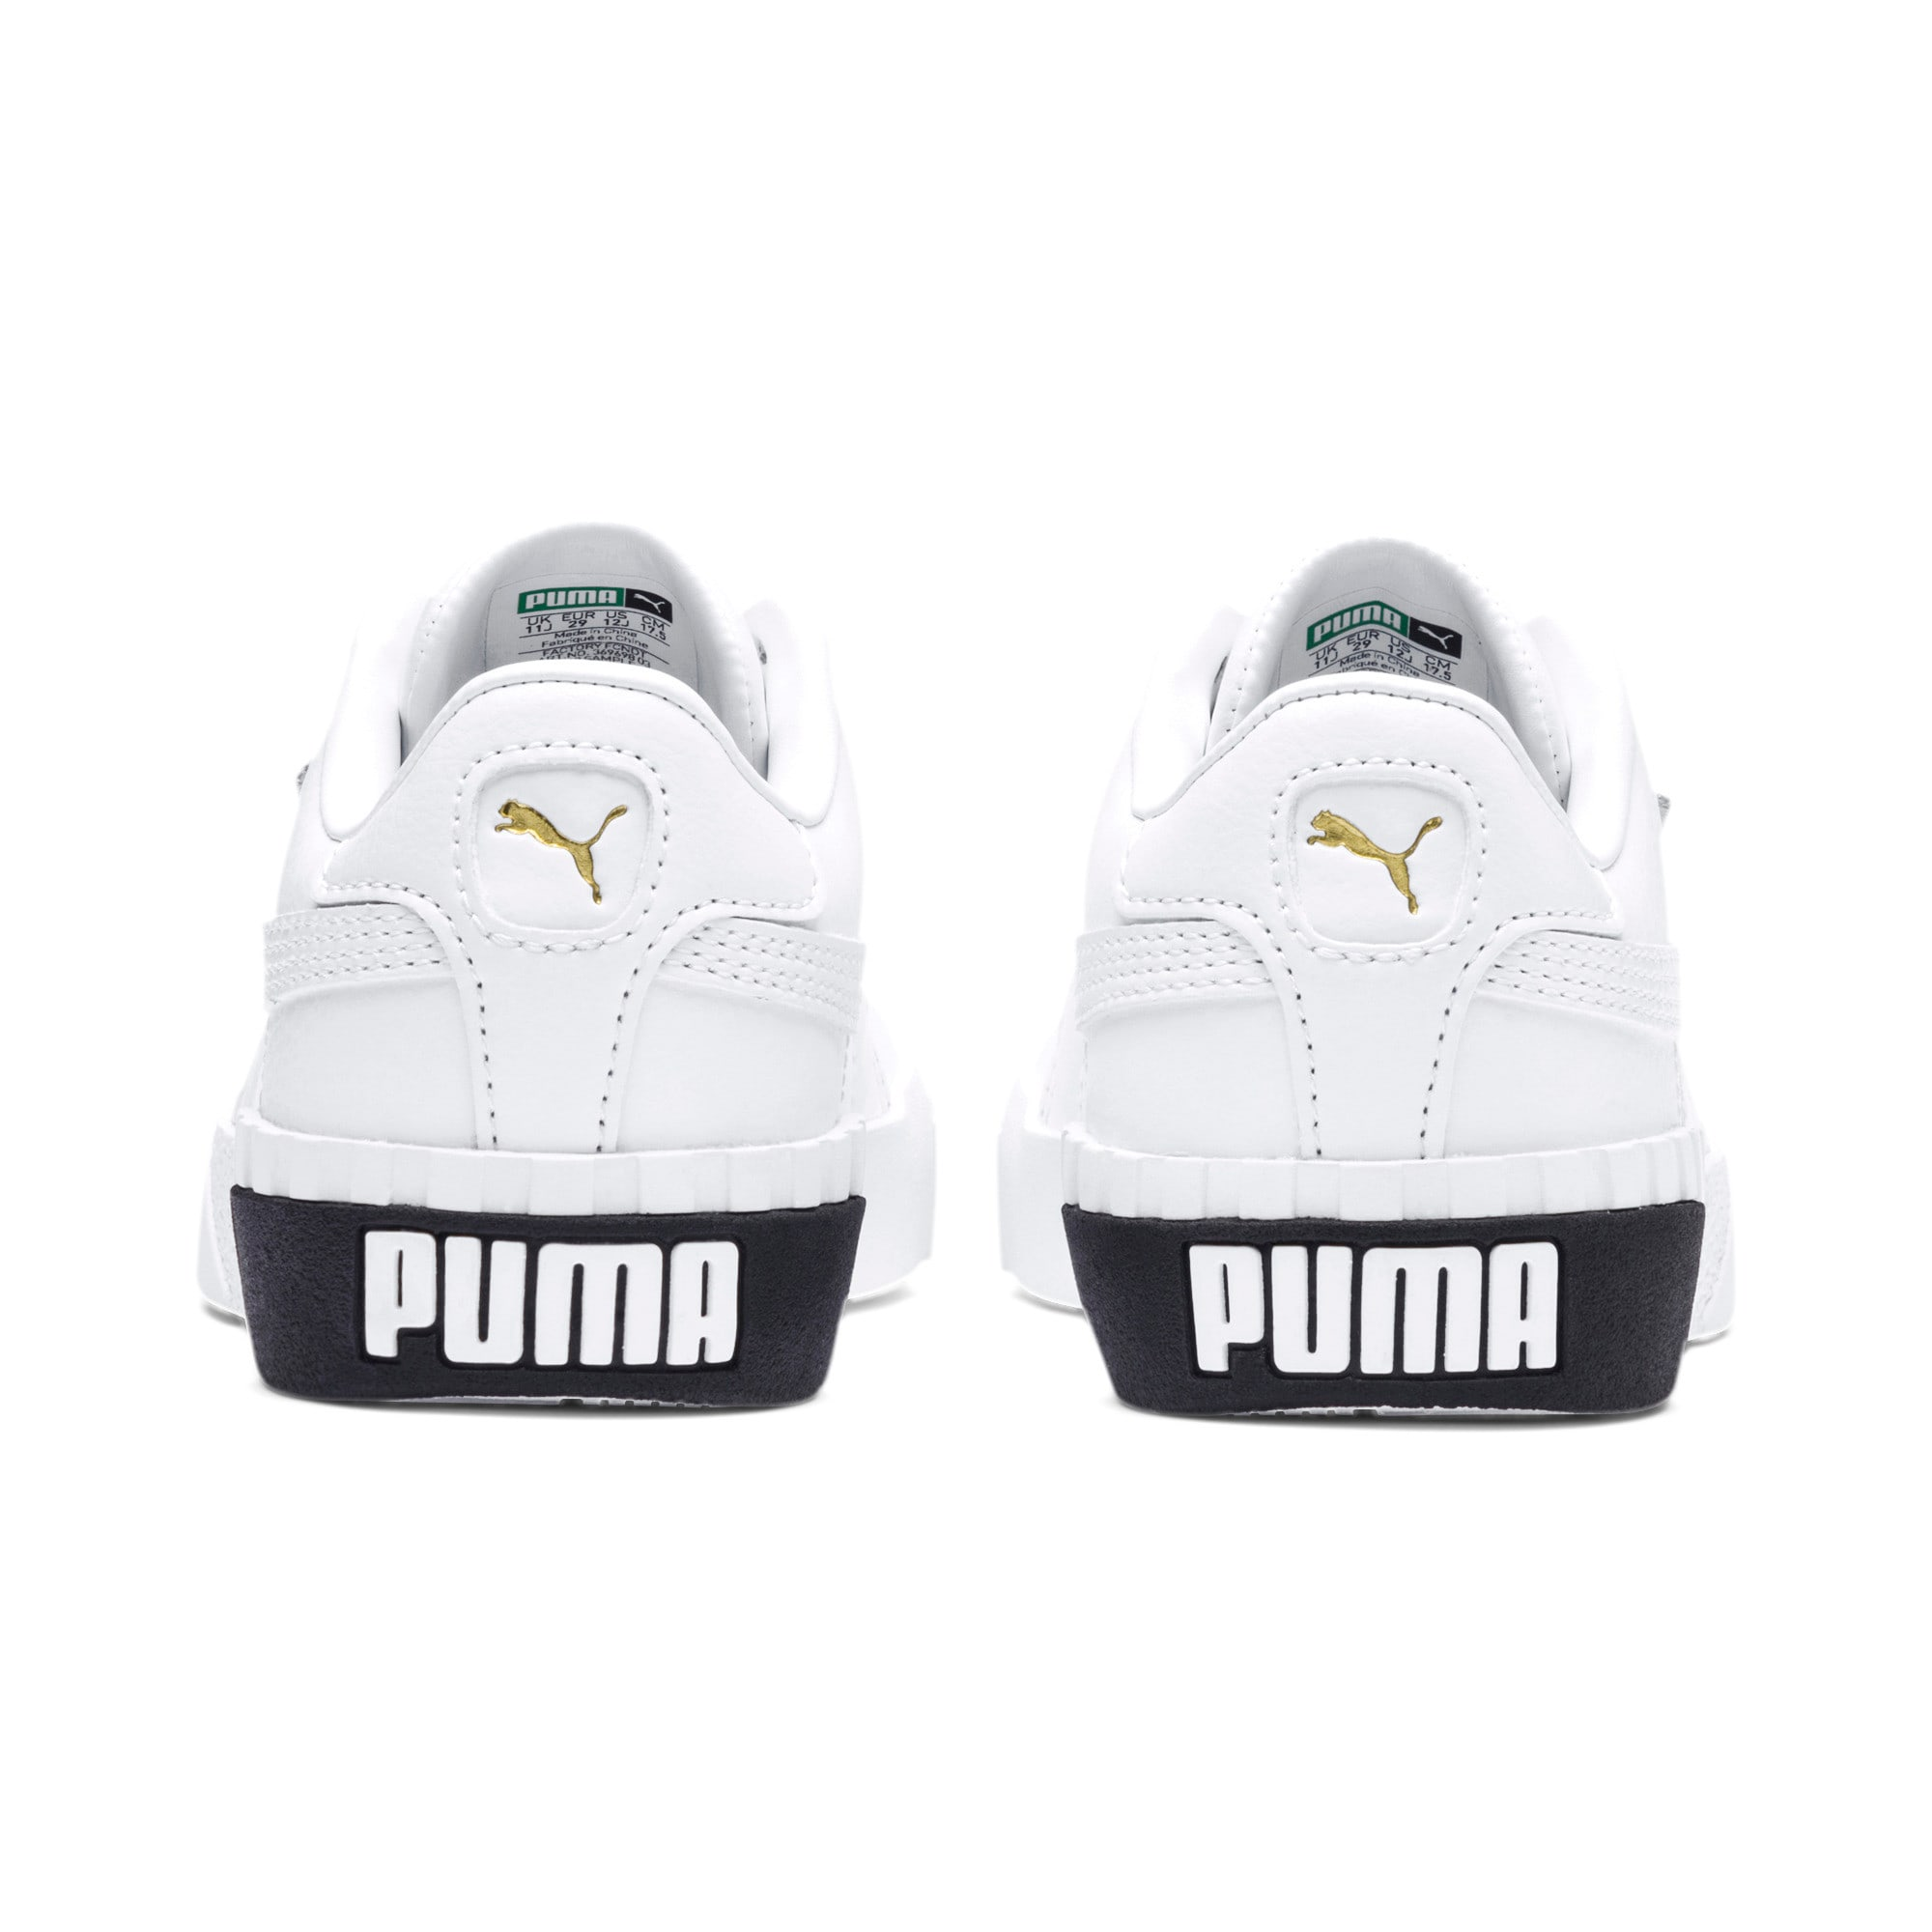 Thumbnail 3 of Cali Little Kids' Shoes, Puma White-Puma Black, medium